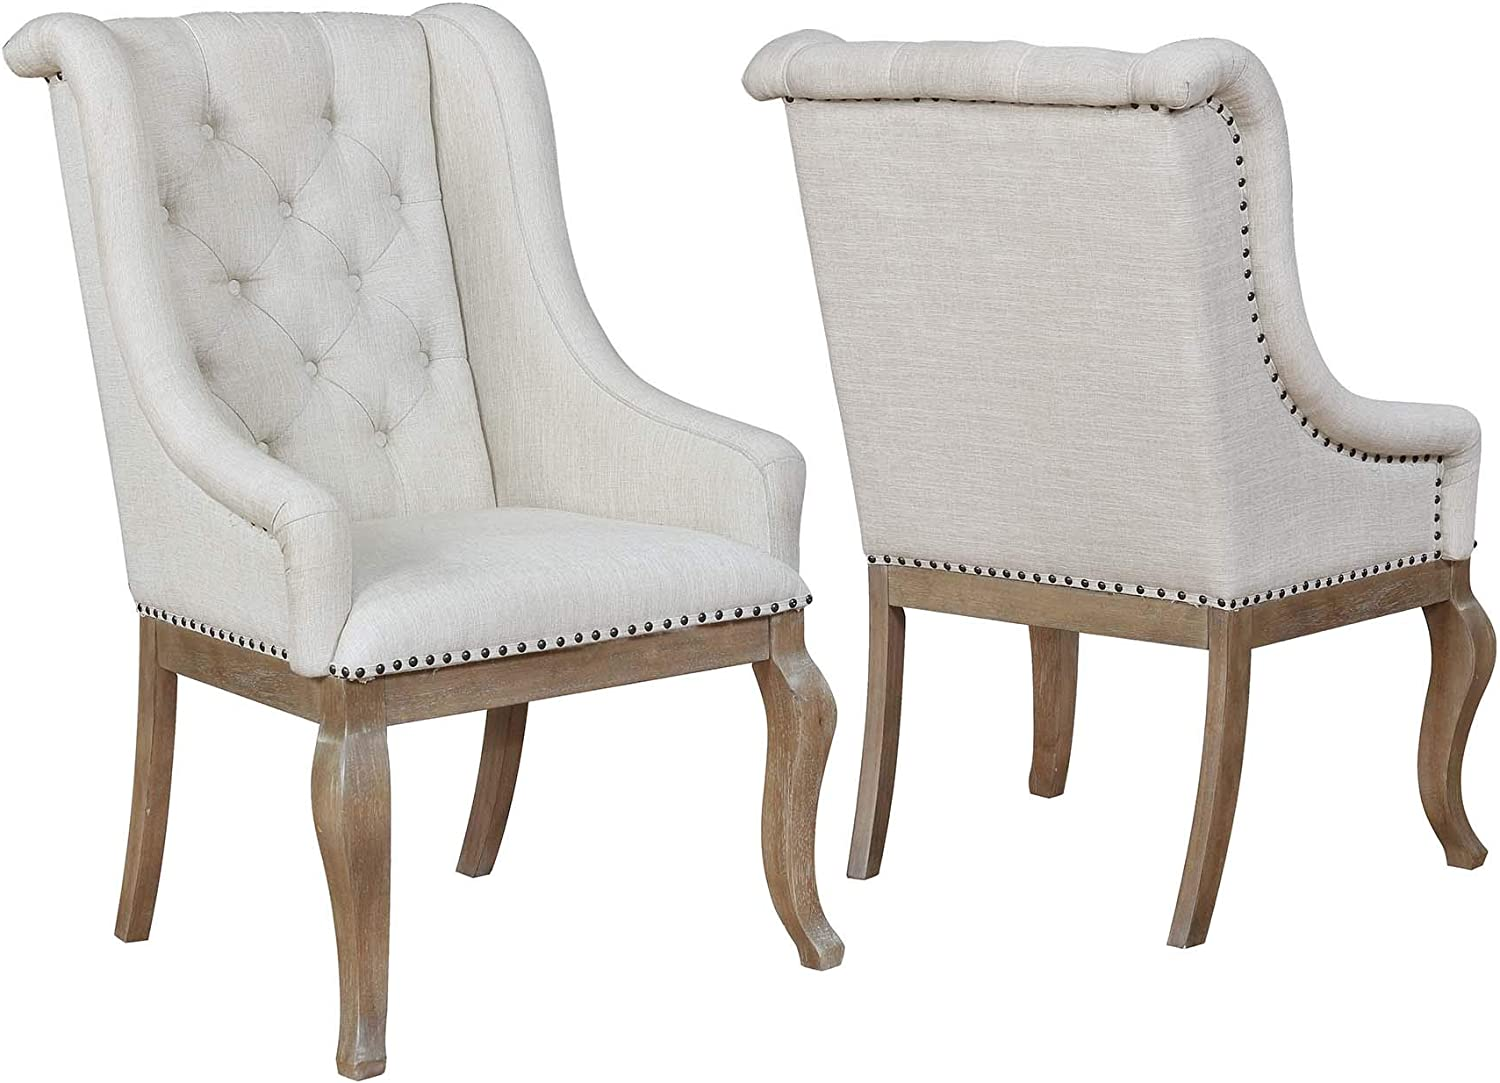 Best for Upholstery: Coaster Home Glen Cove Arm Chair.